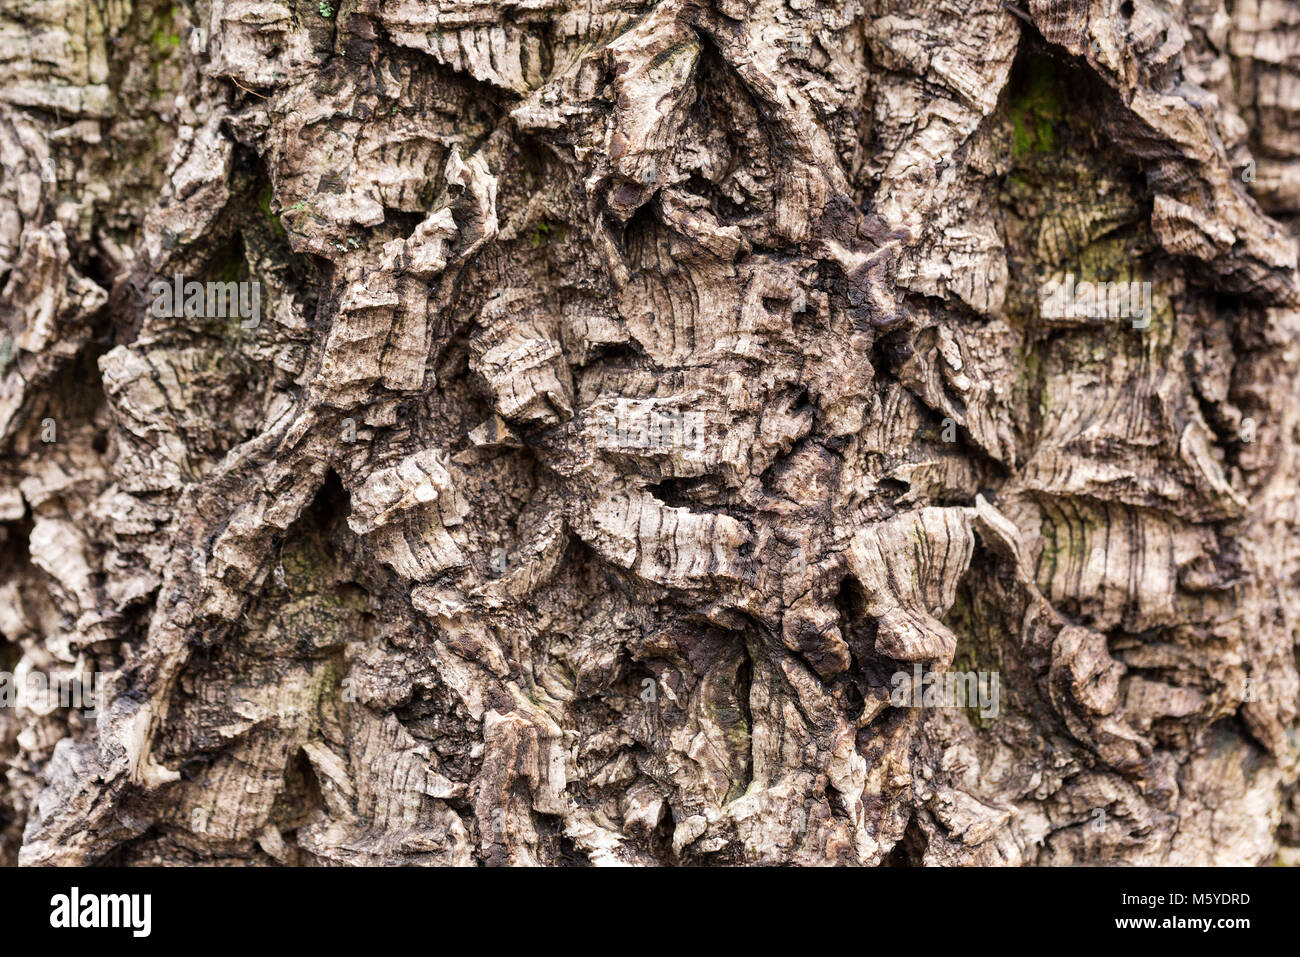 Old tree bark textured. Crooked and wry surface. Weathered and aged wooden texture with deep furrow - Stock Image